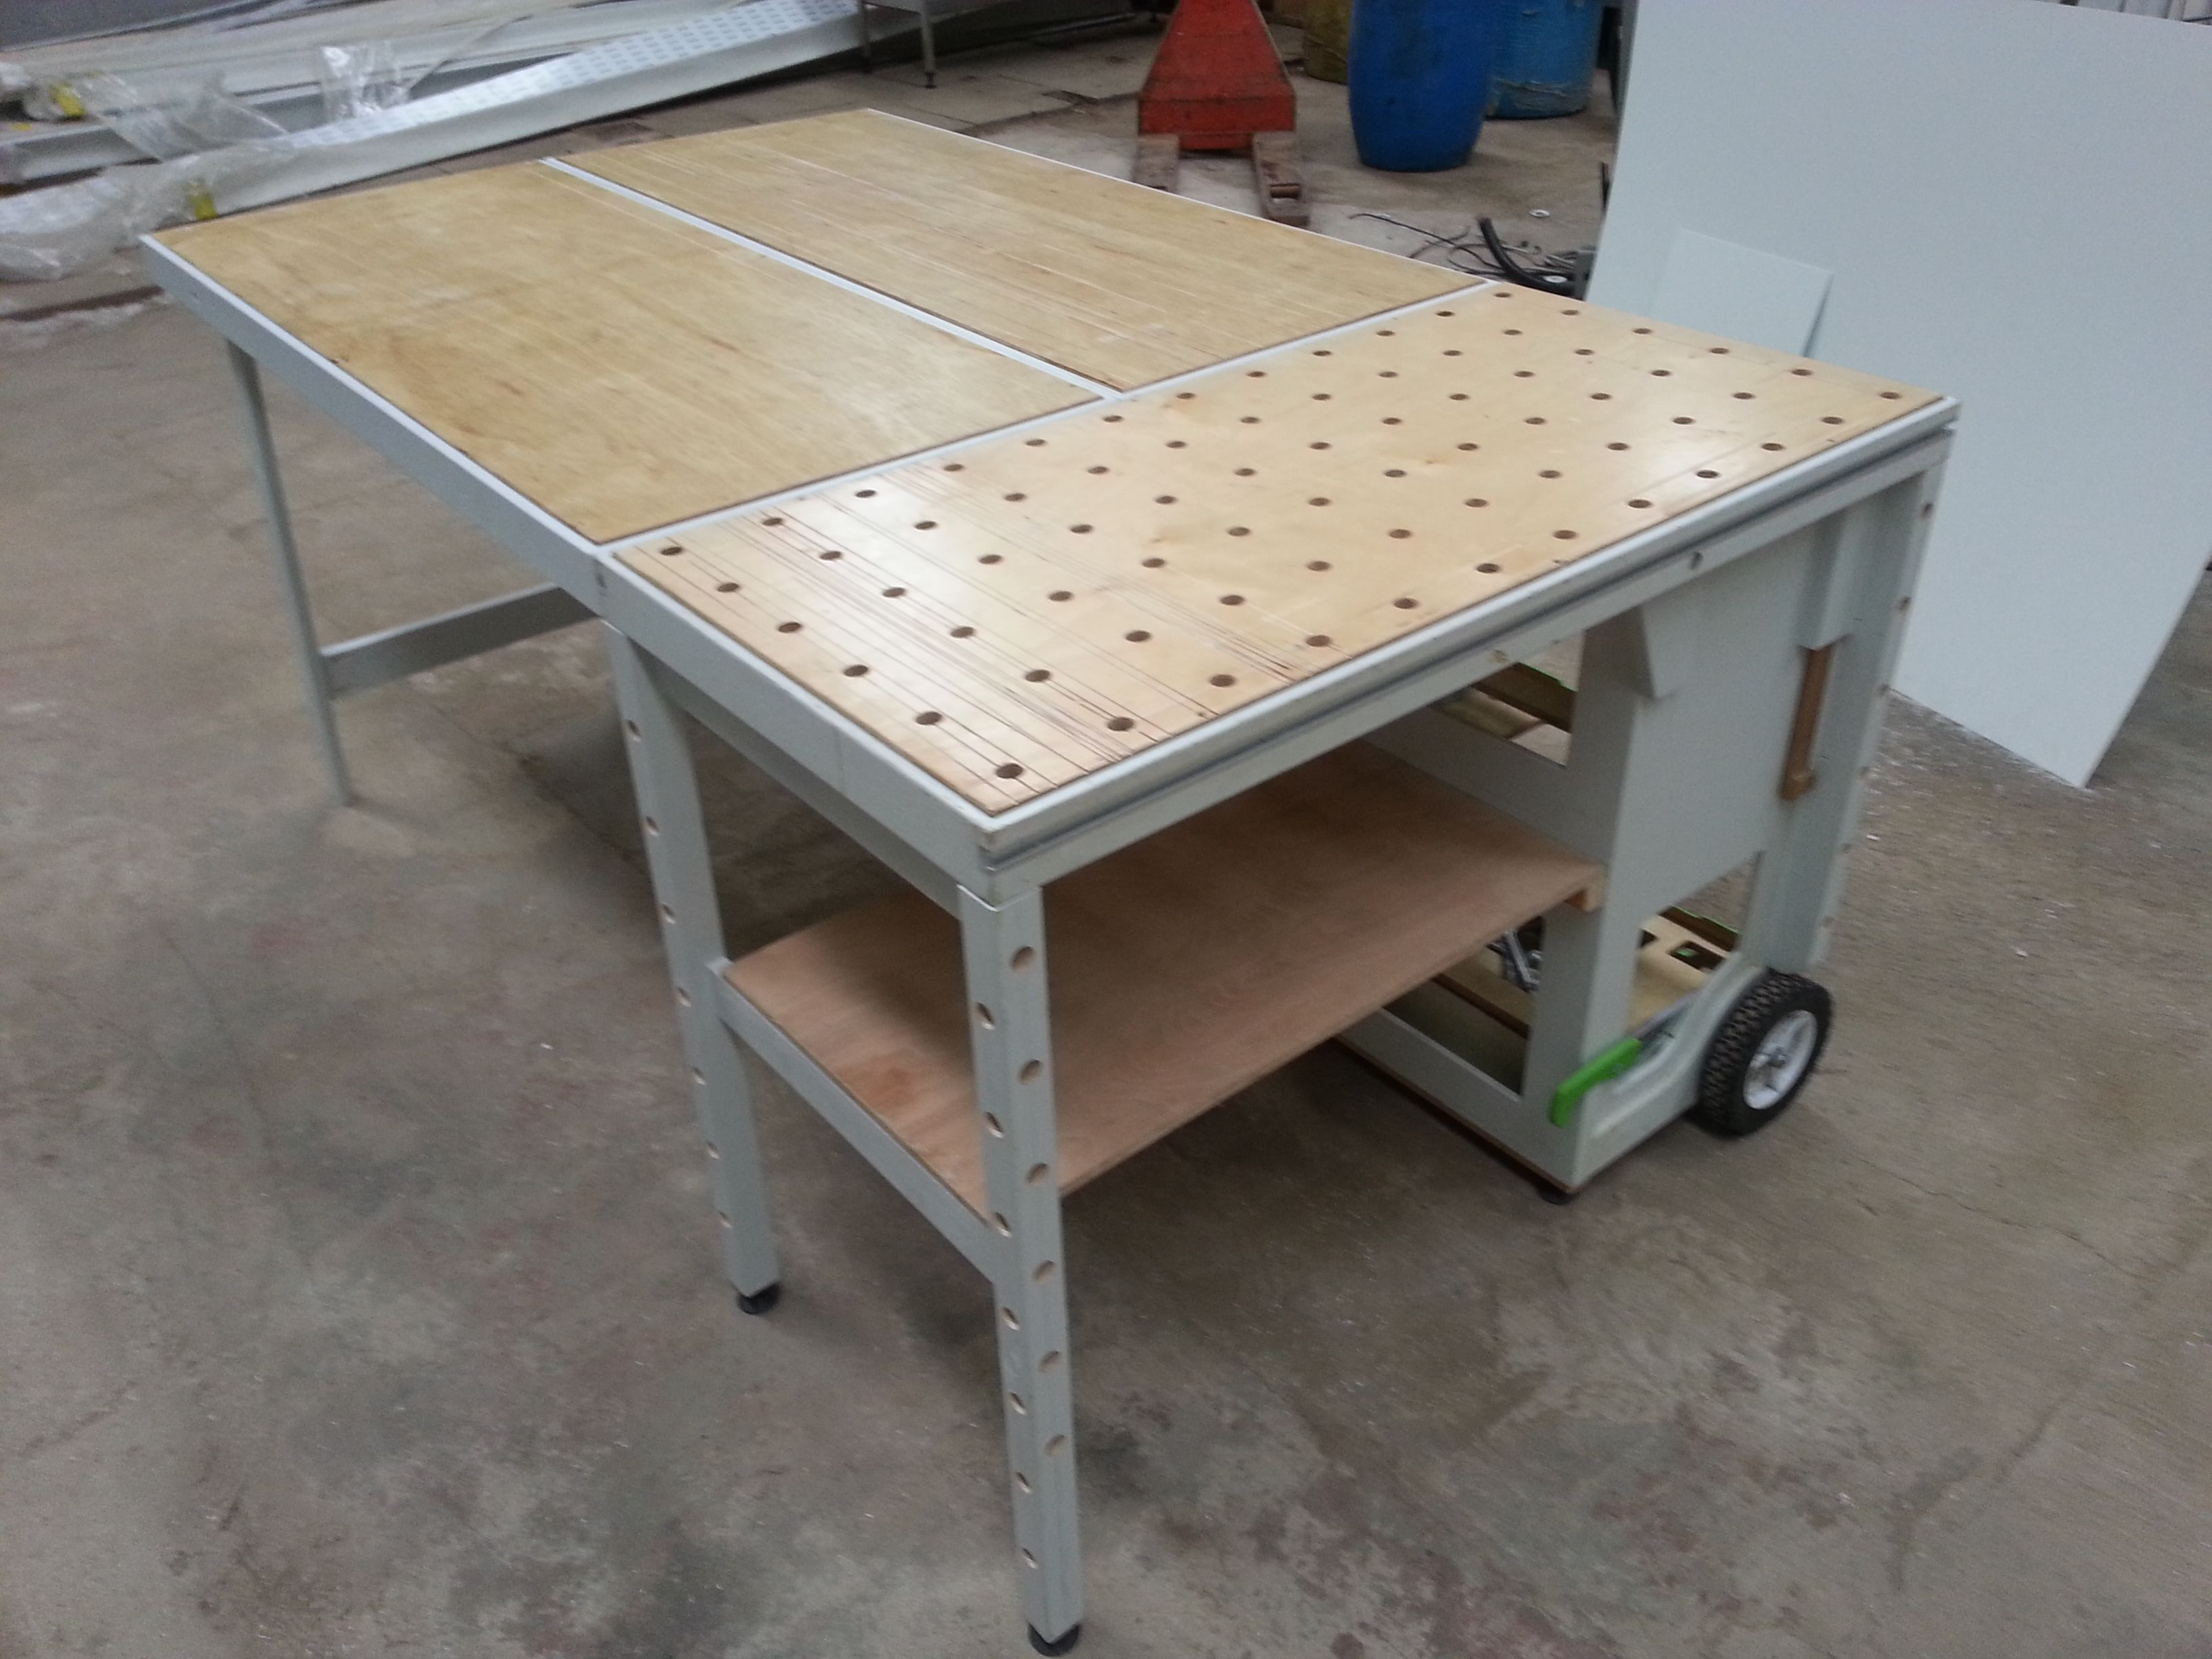 Table De Travail Atelier Mftc Portable Workshop Mftc Pinterest Atelier